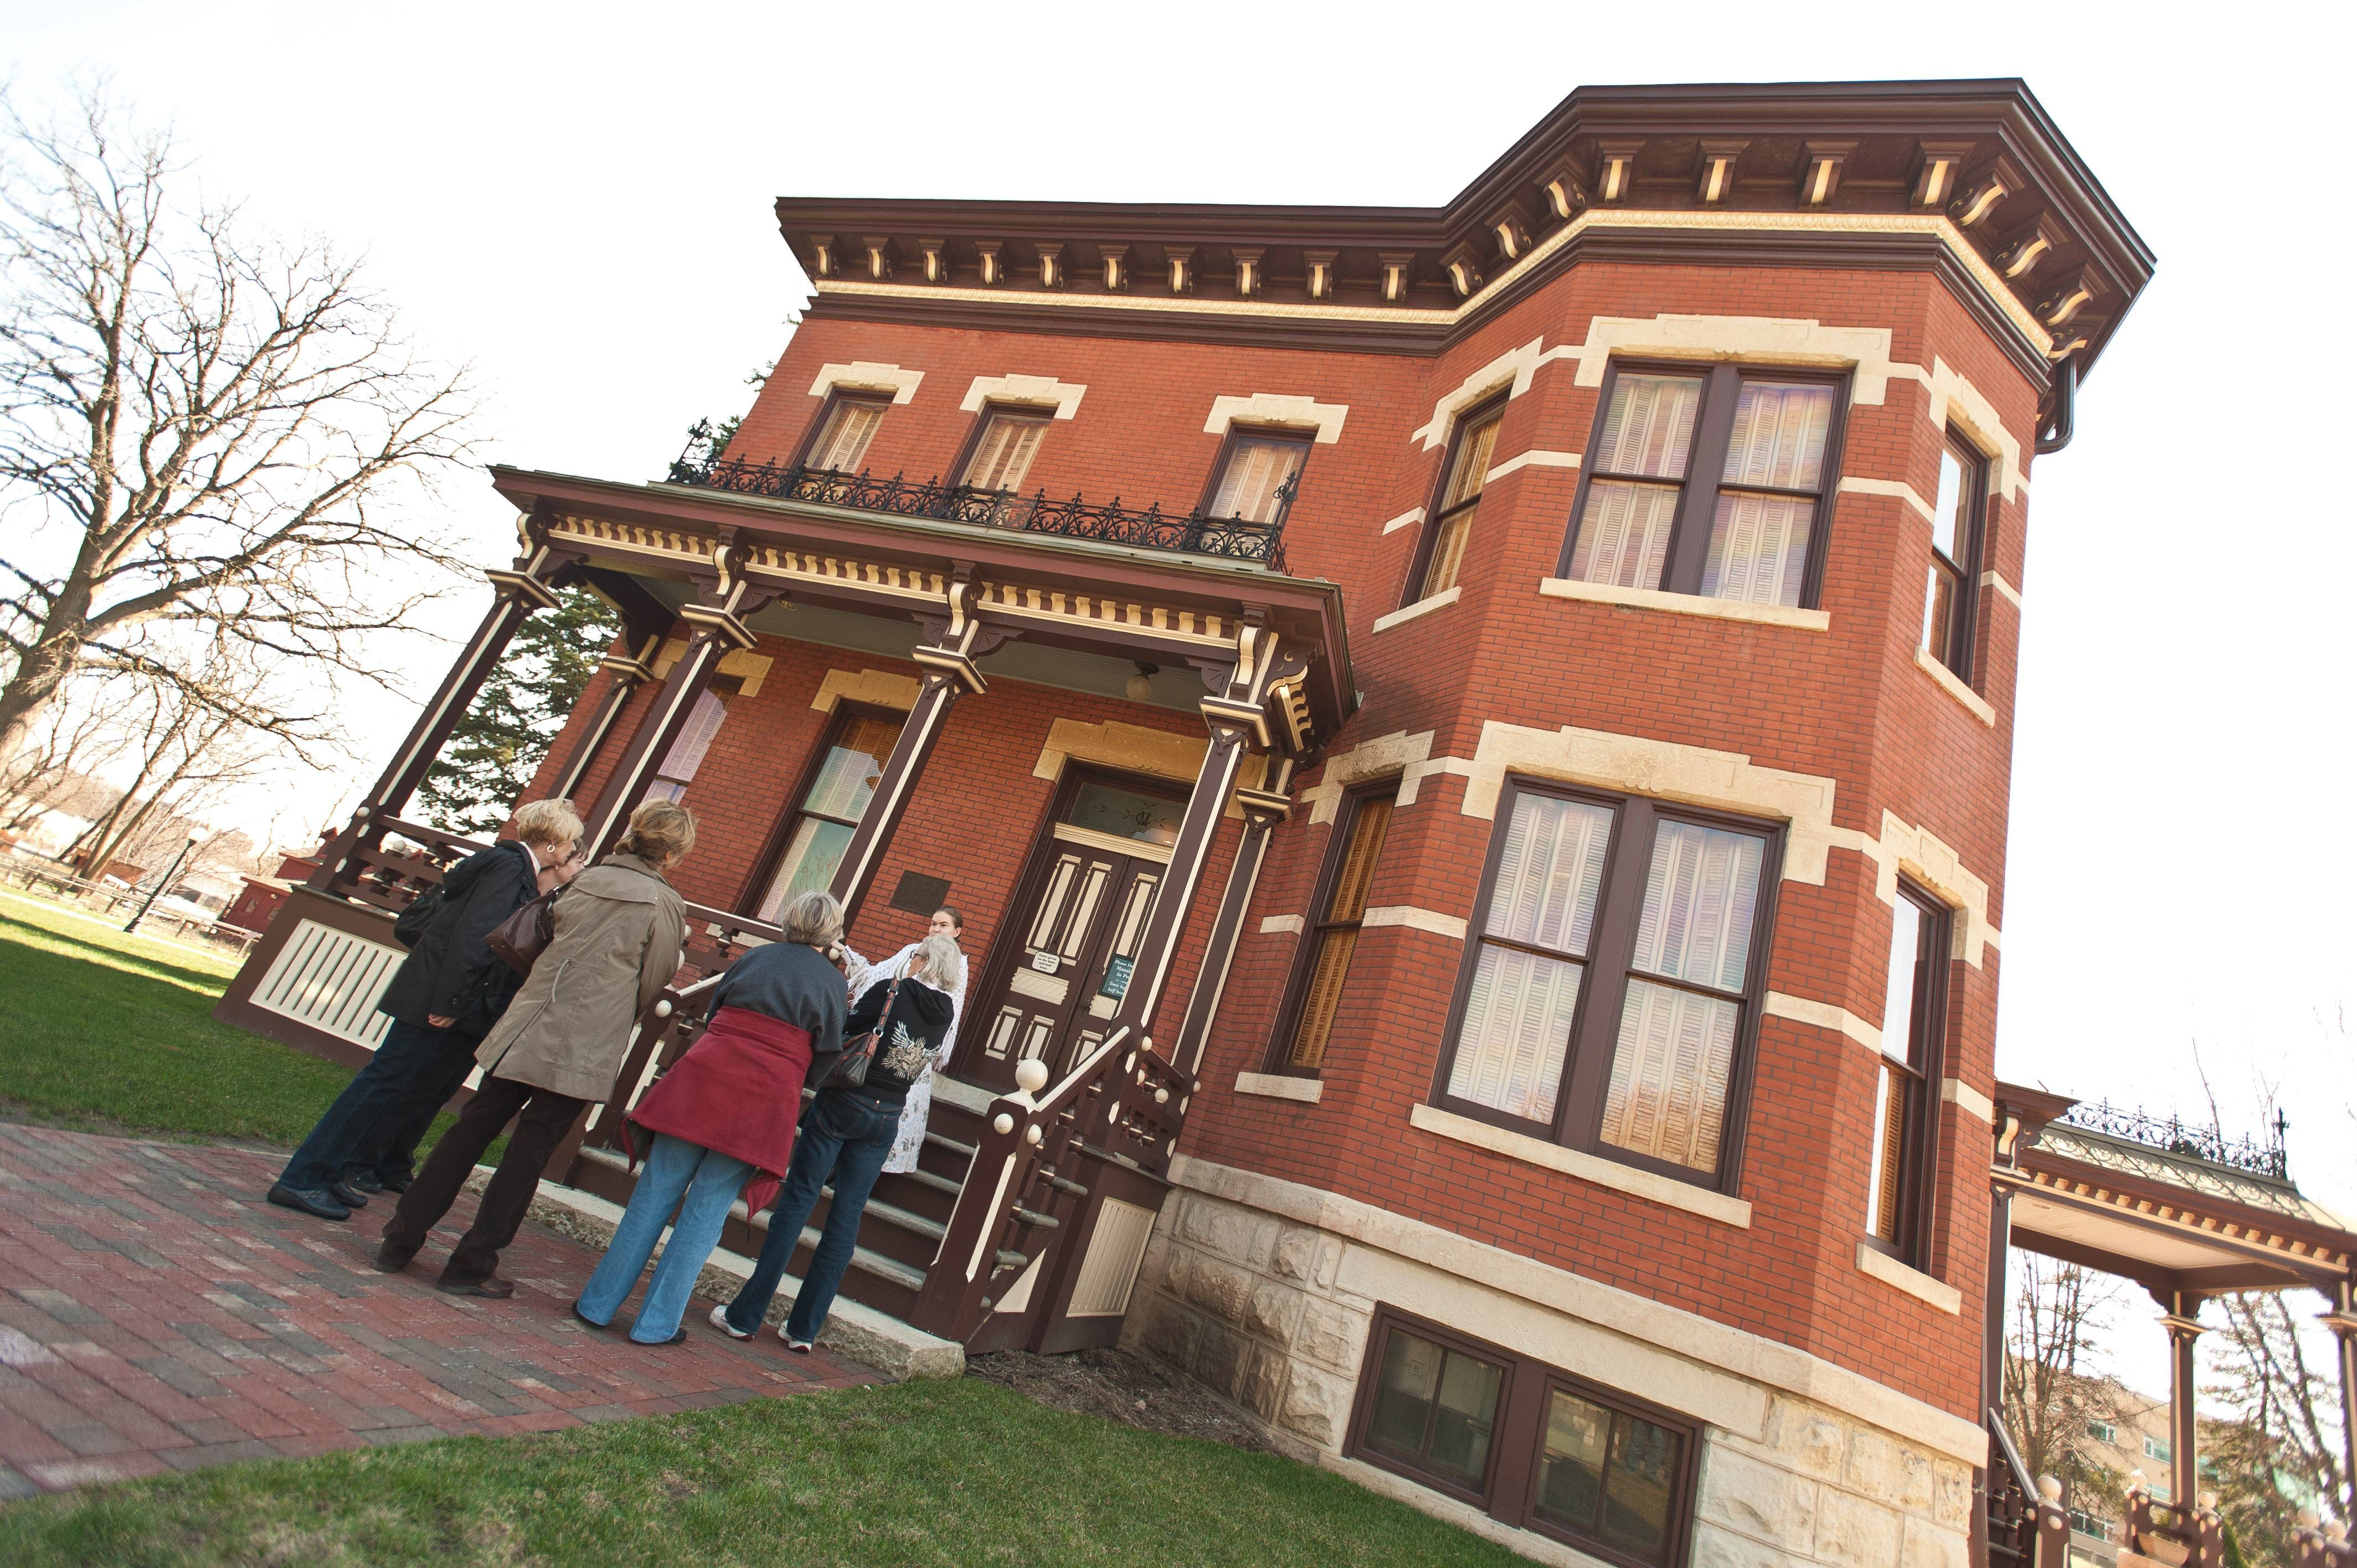 Naper Settlement volunteer Avery Sipla gives a tour of the Martin Mitchell Mansion, which is celebrating its 130th anniversary in 2014.